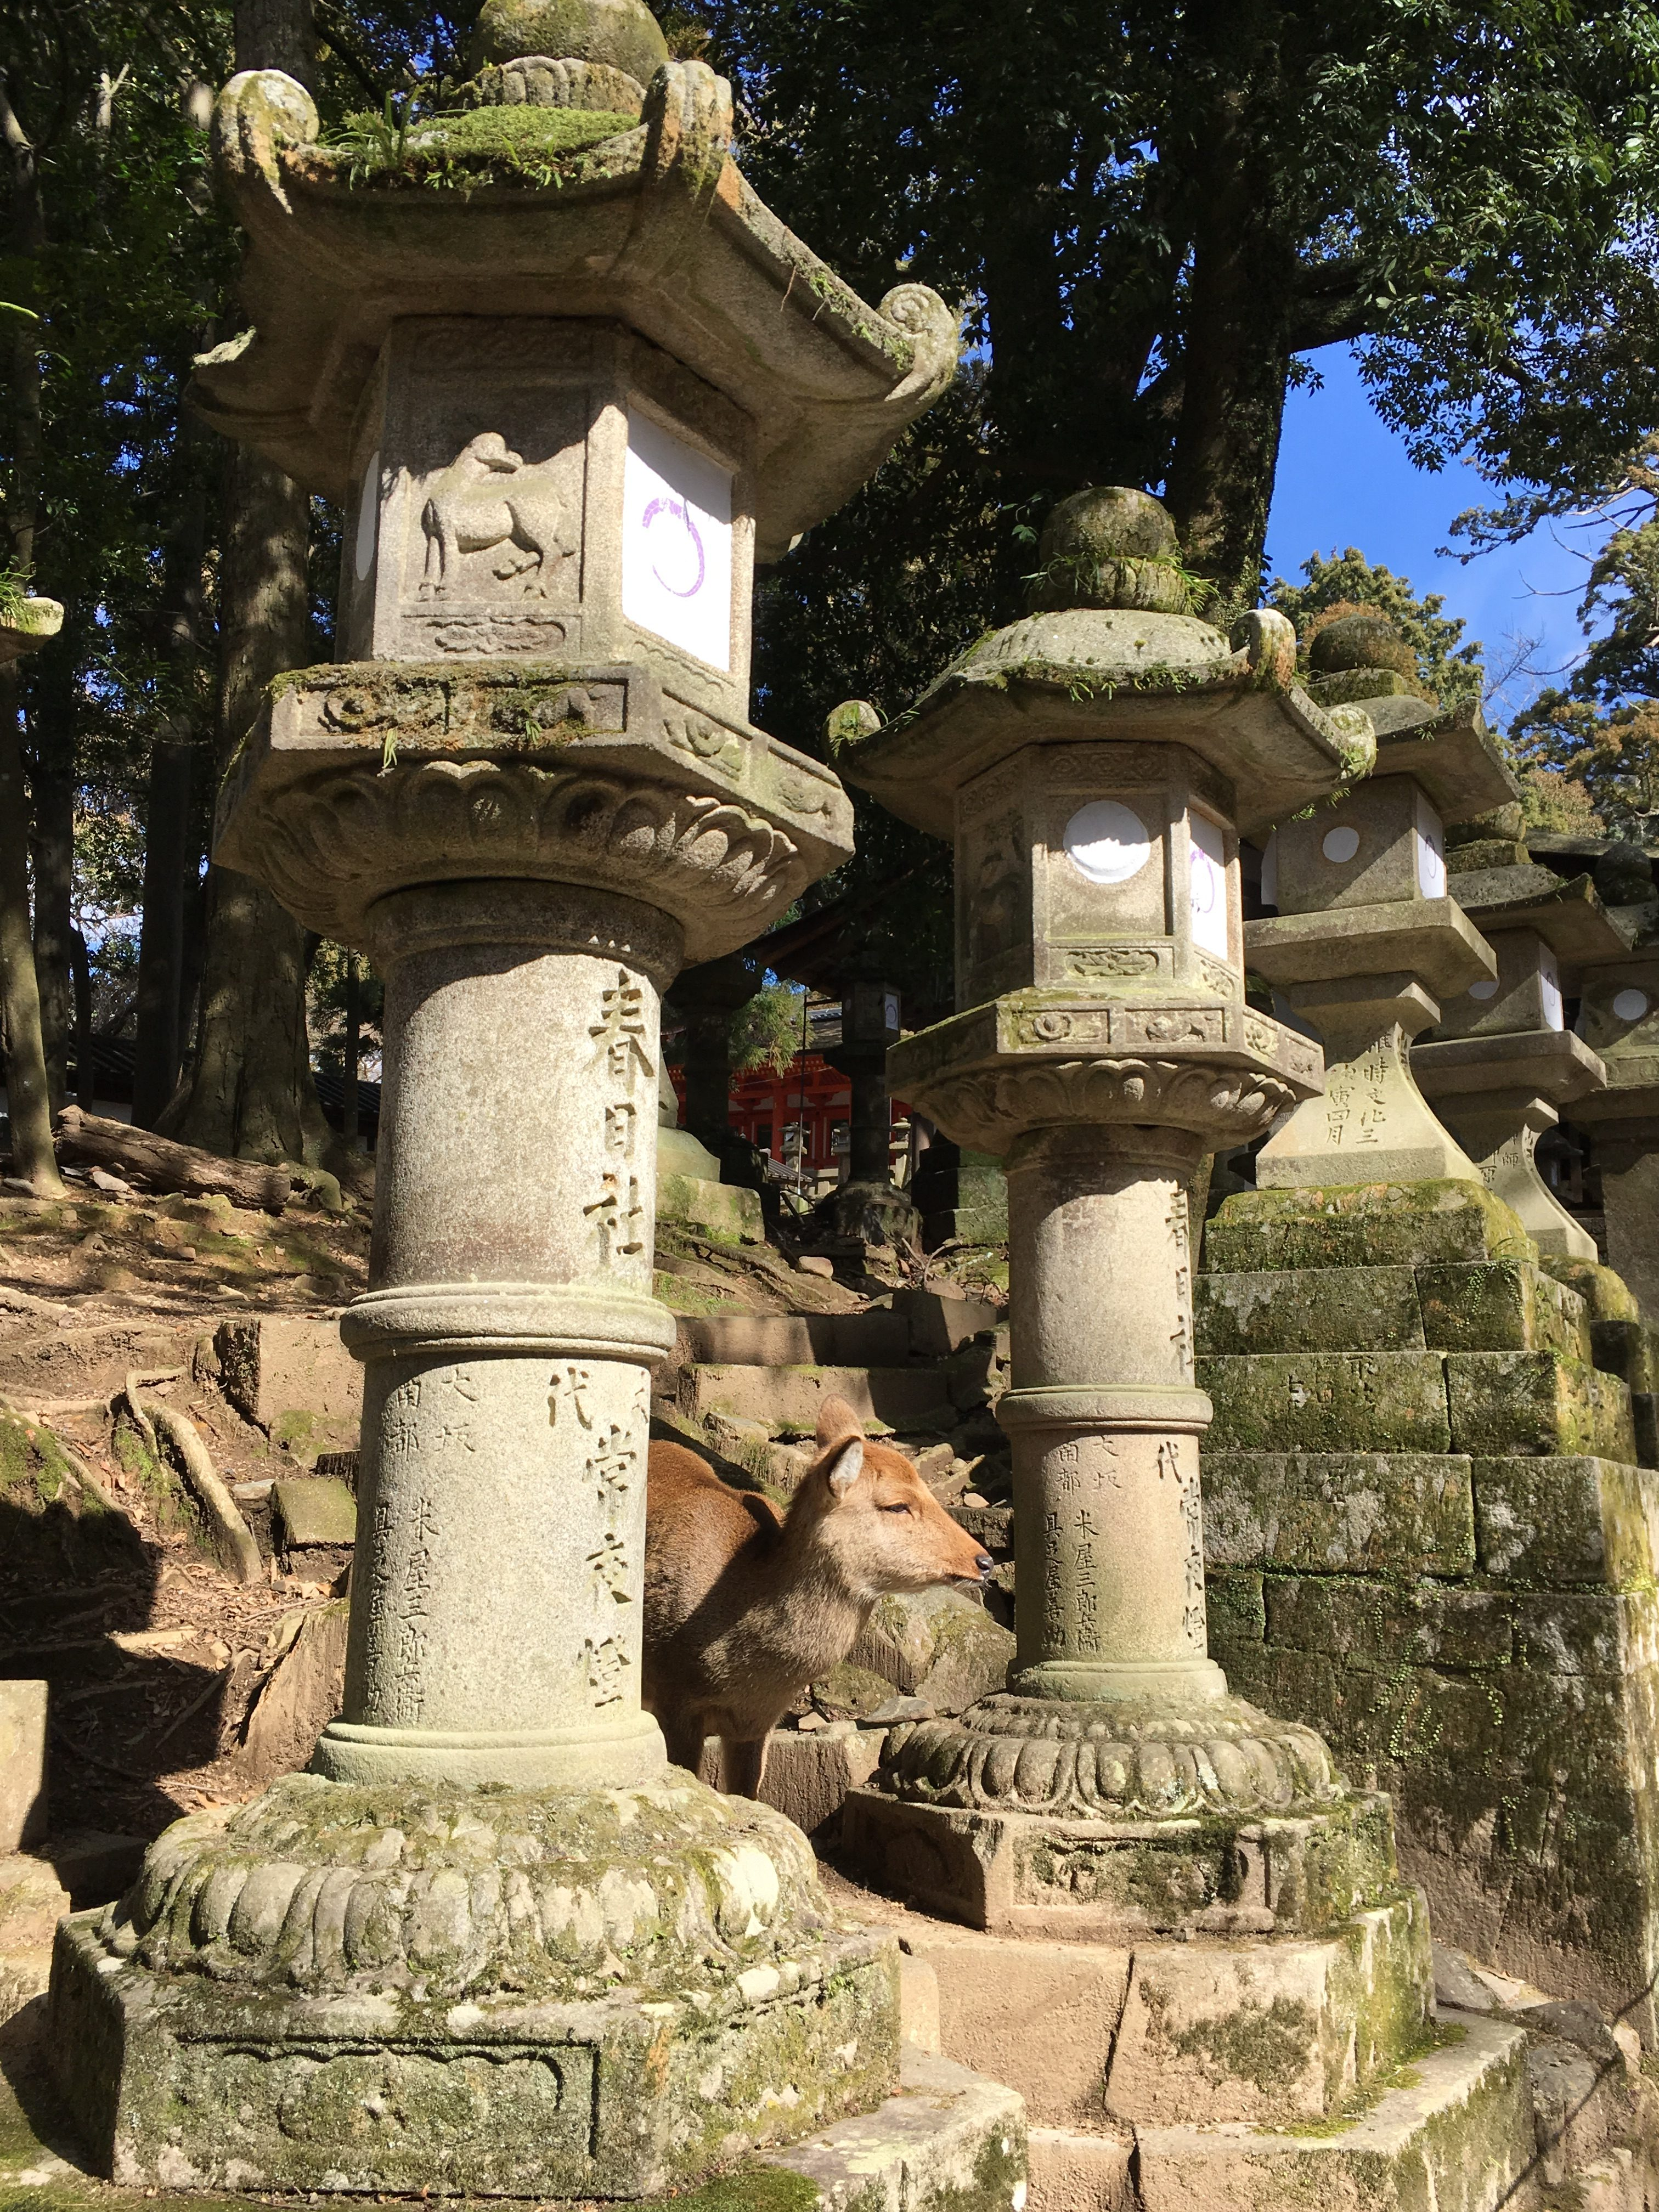 Japanese deer between two stone lanterns at kasuga taisha